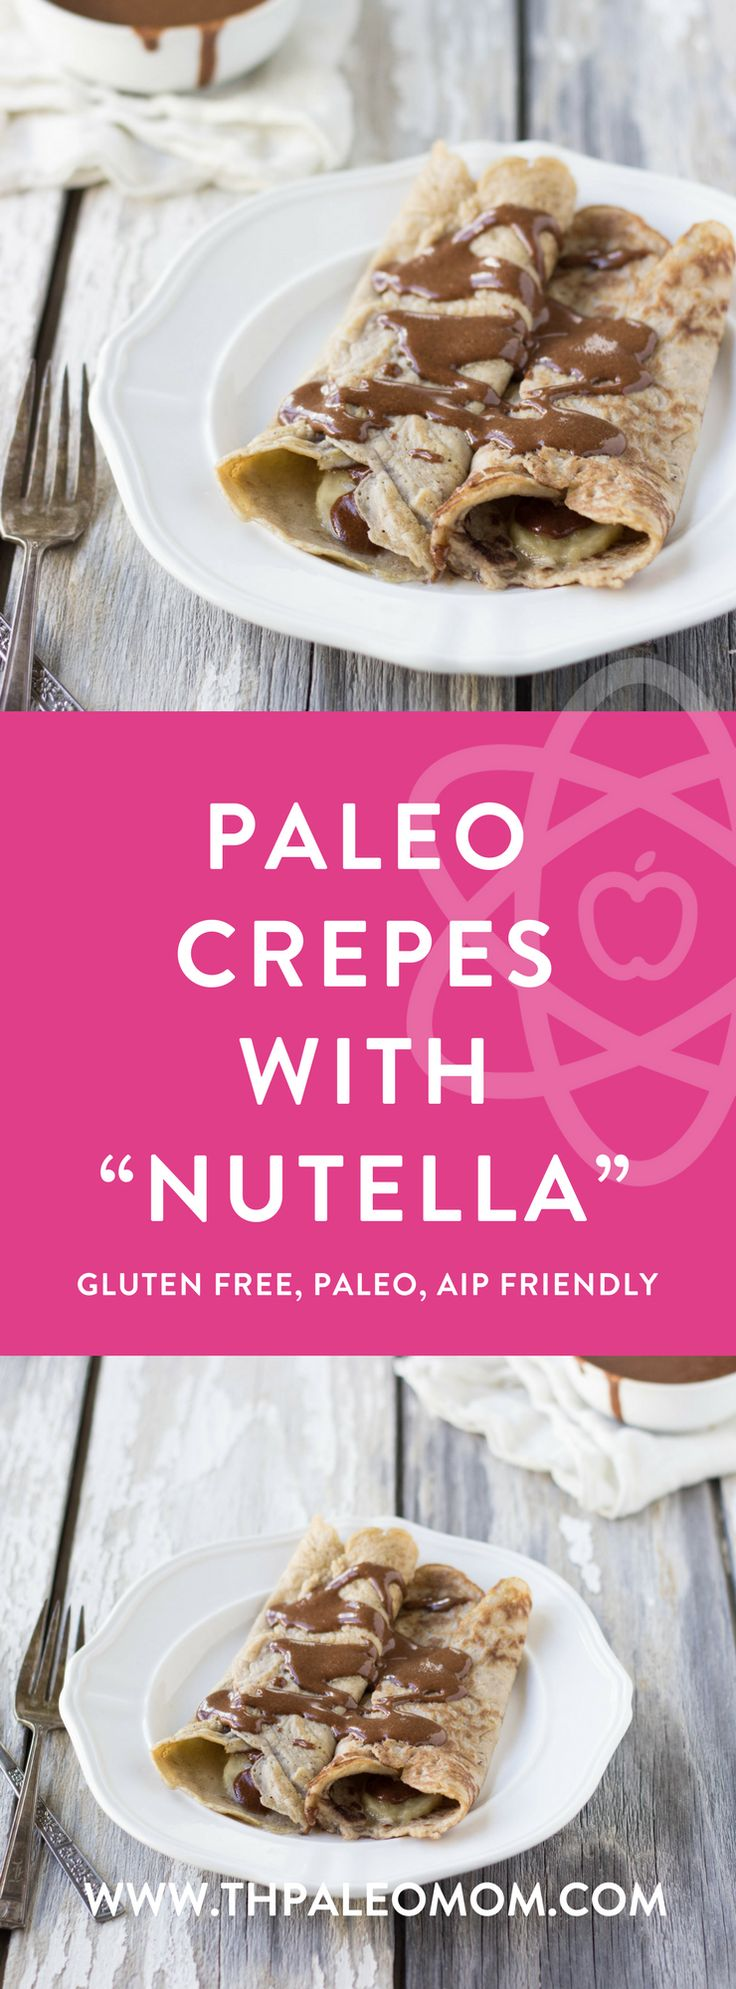 Paleo Crepes with Homemade Nutella   The Paleo Mom